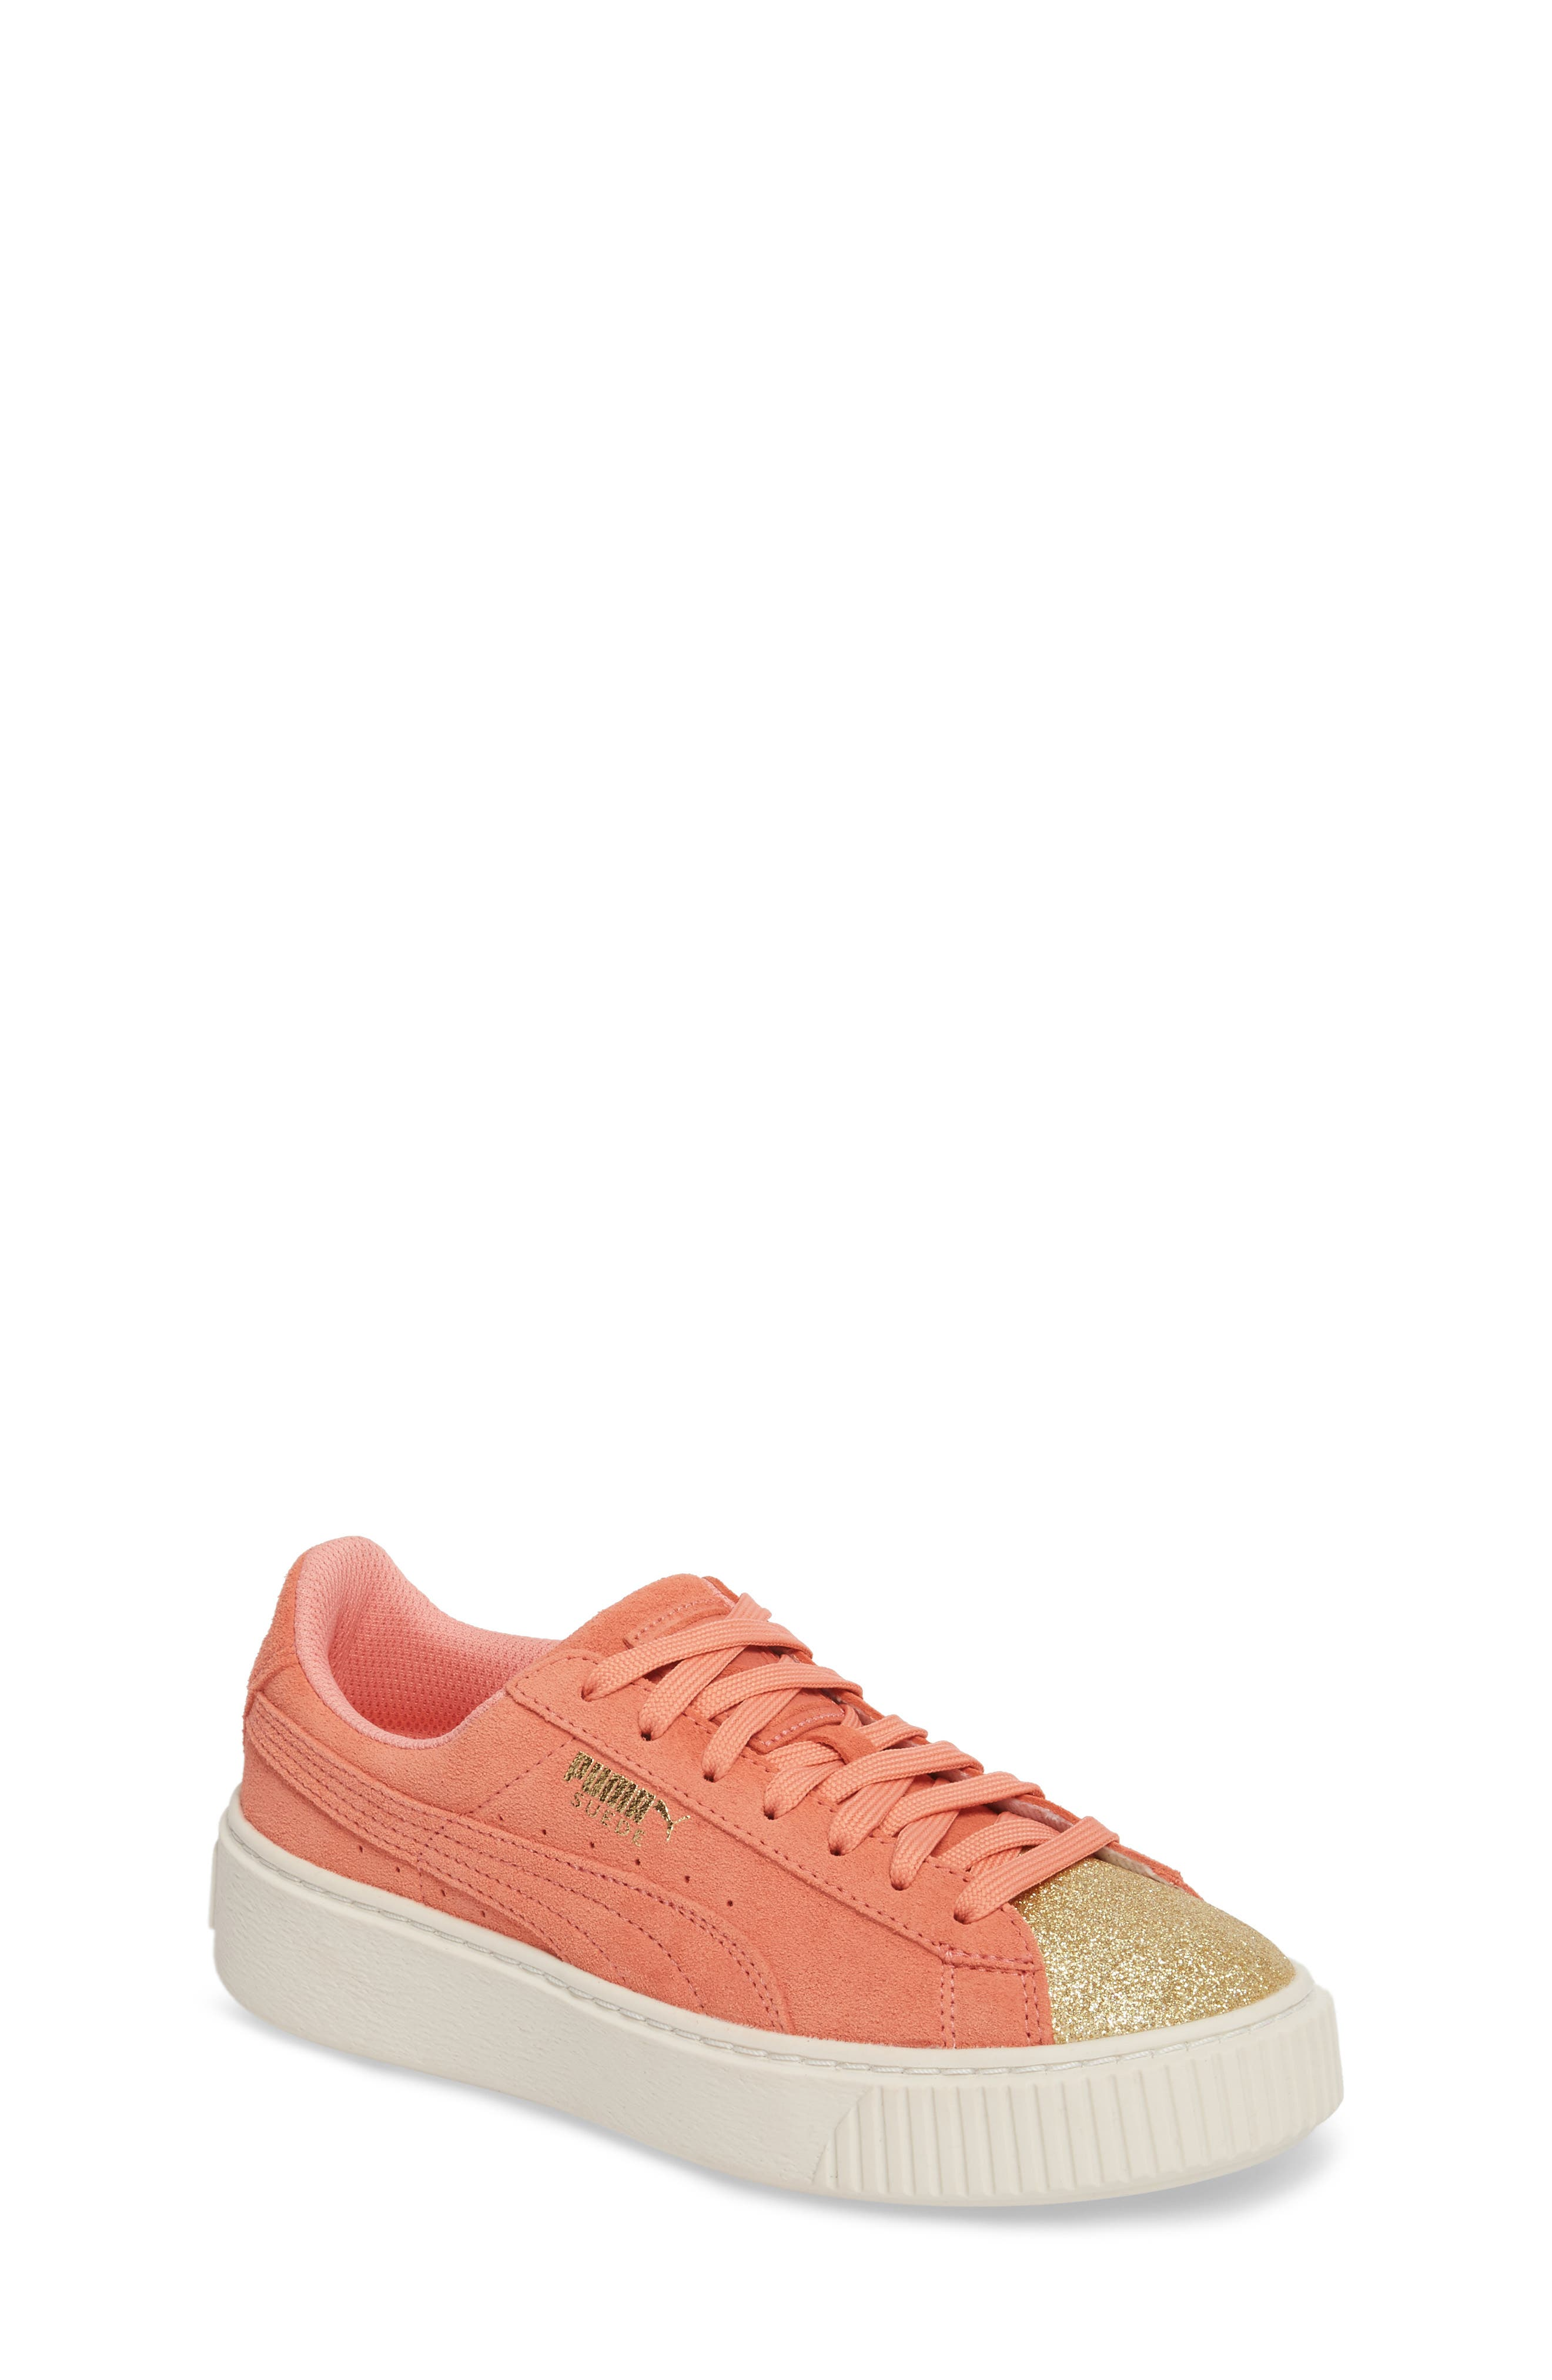 Suede Platform Glam PS Sneaker,                         Main,                         color, Puma Team Gold/ Shell Pink